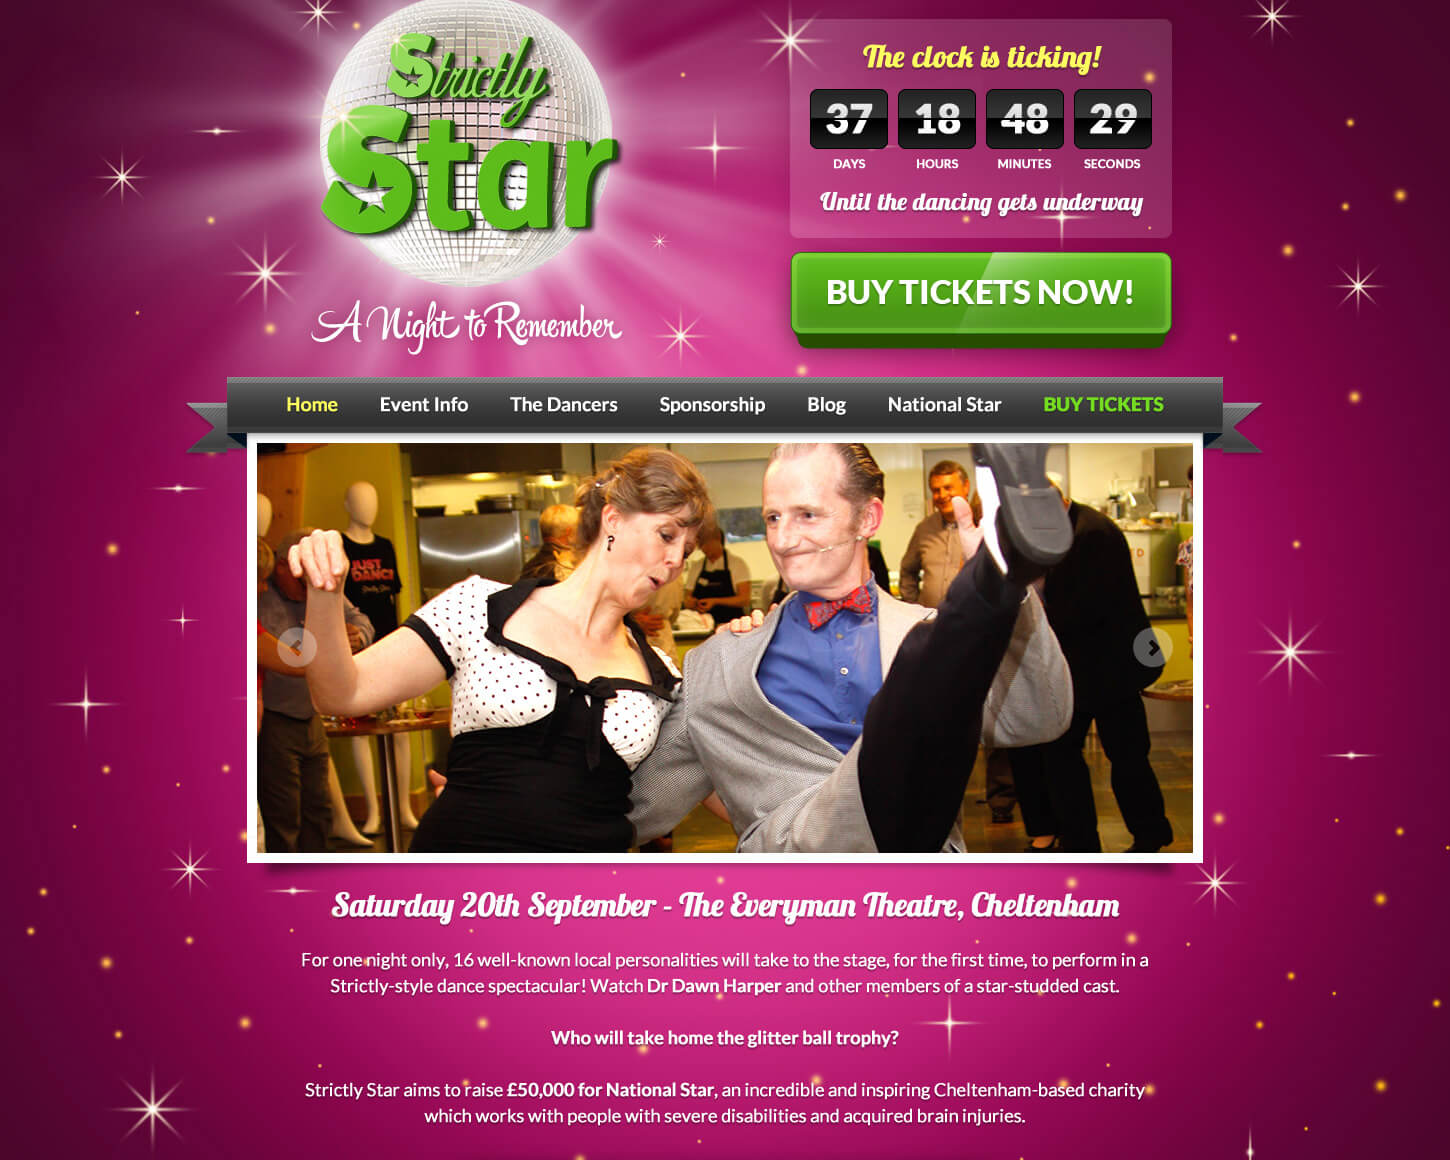 Striclty Star website detail page